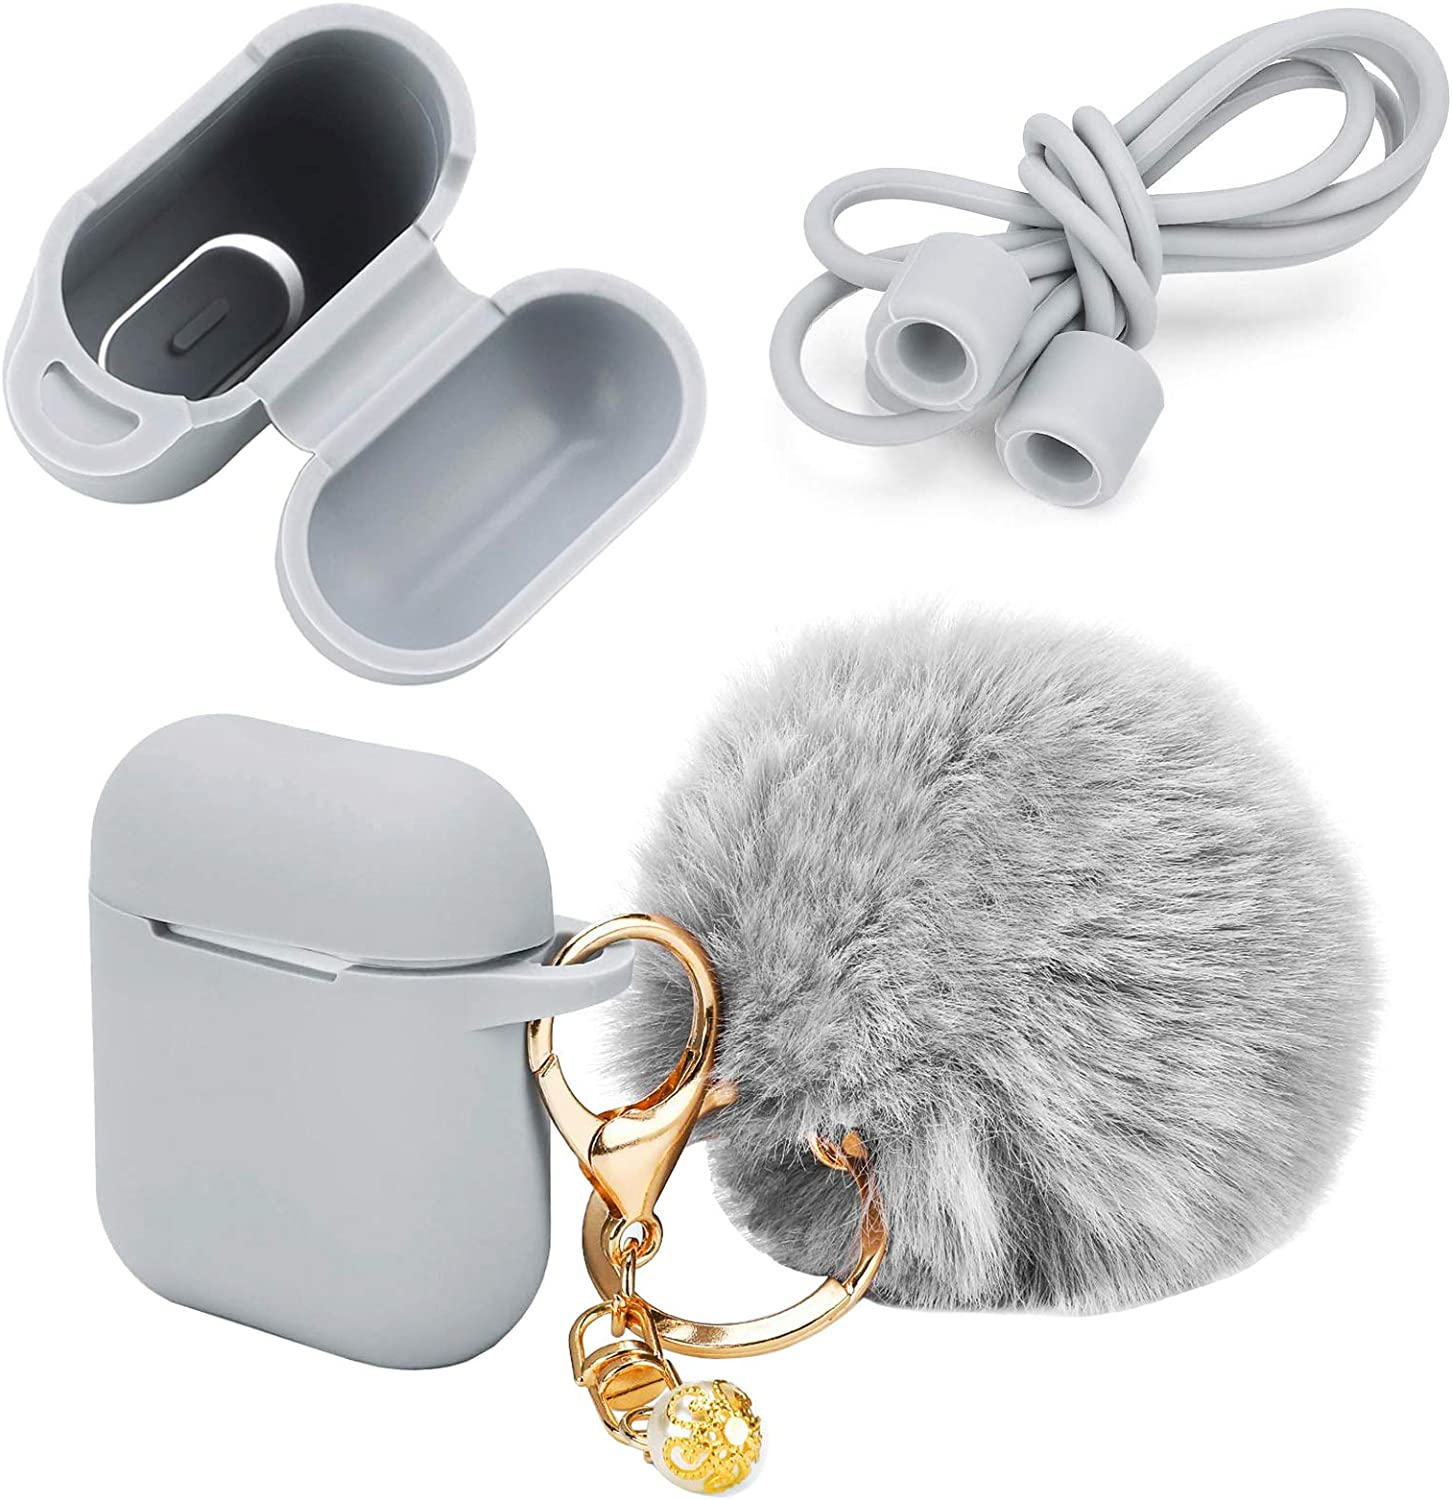 Earphone Silicone Case Cover Skin with Fur Ball Key Chain and Locking Carabiner Compatible for AirPods Charing Case - Silicone Hang Case Cover with Anti-Lost Strap as Headphone Accessories (Gray)